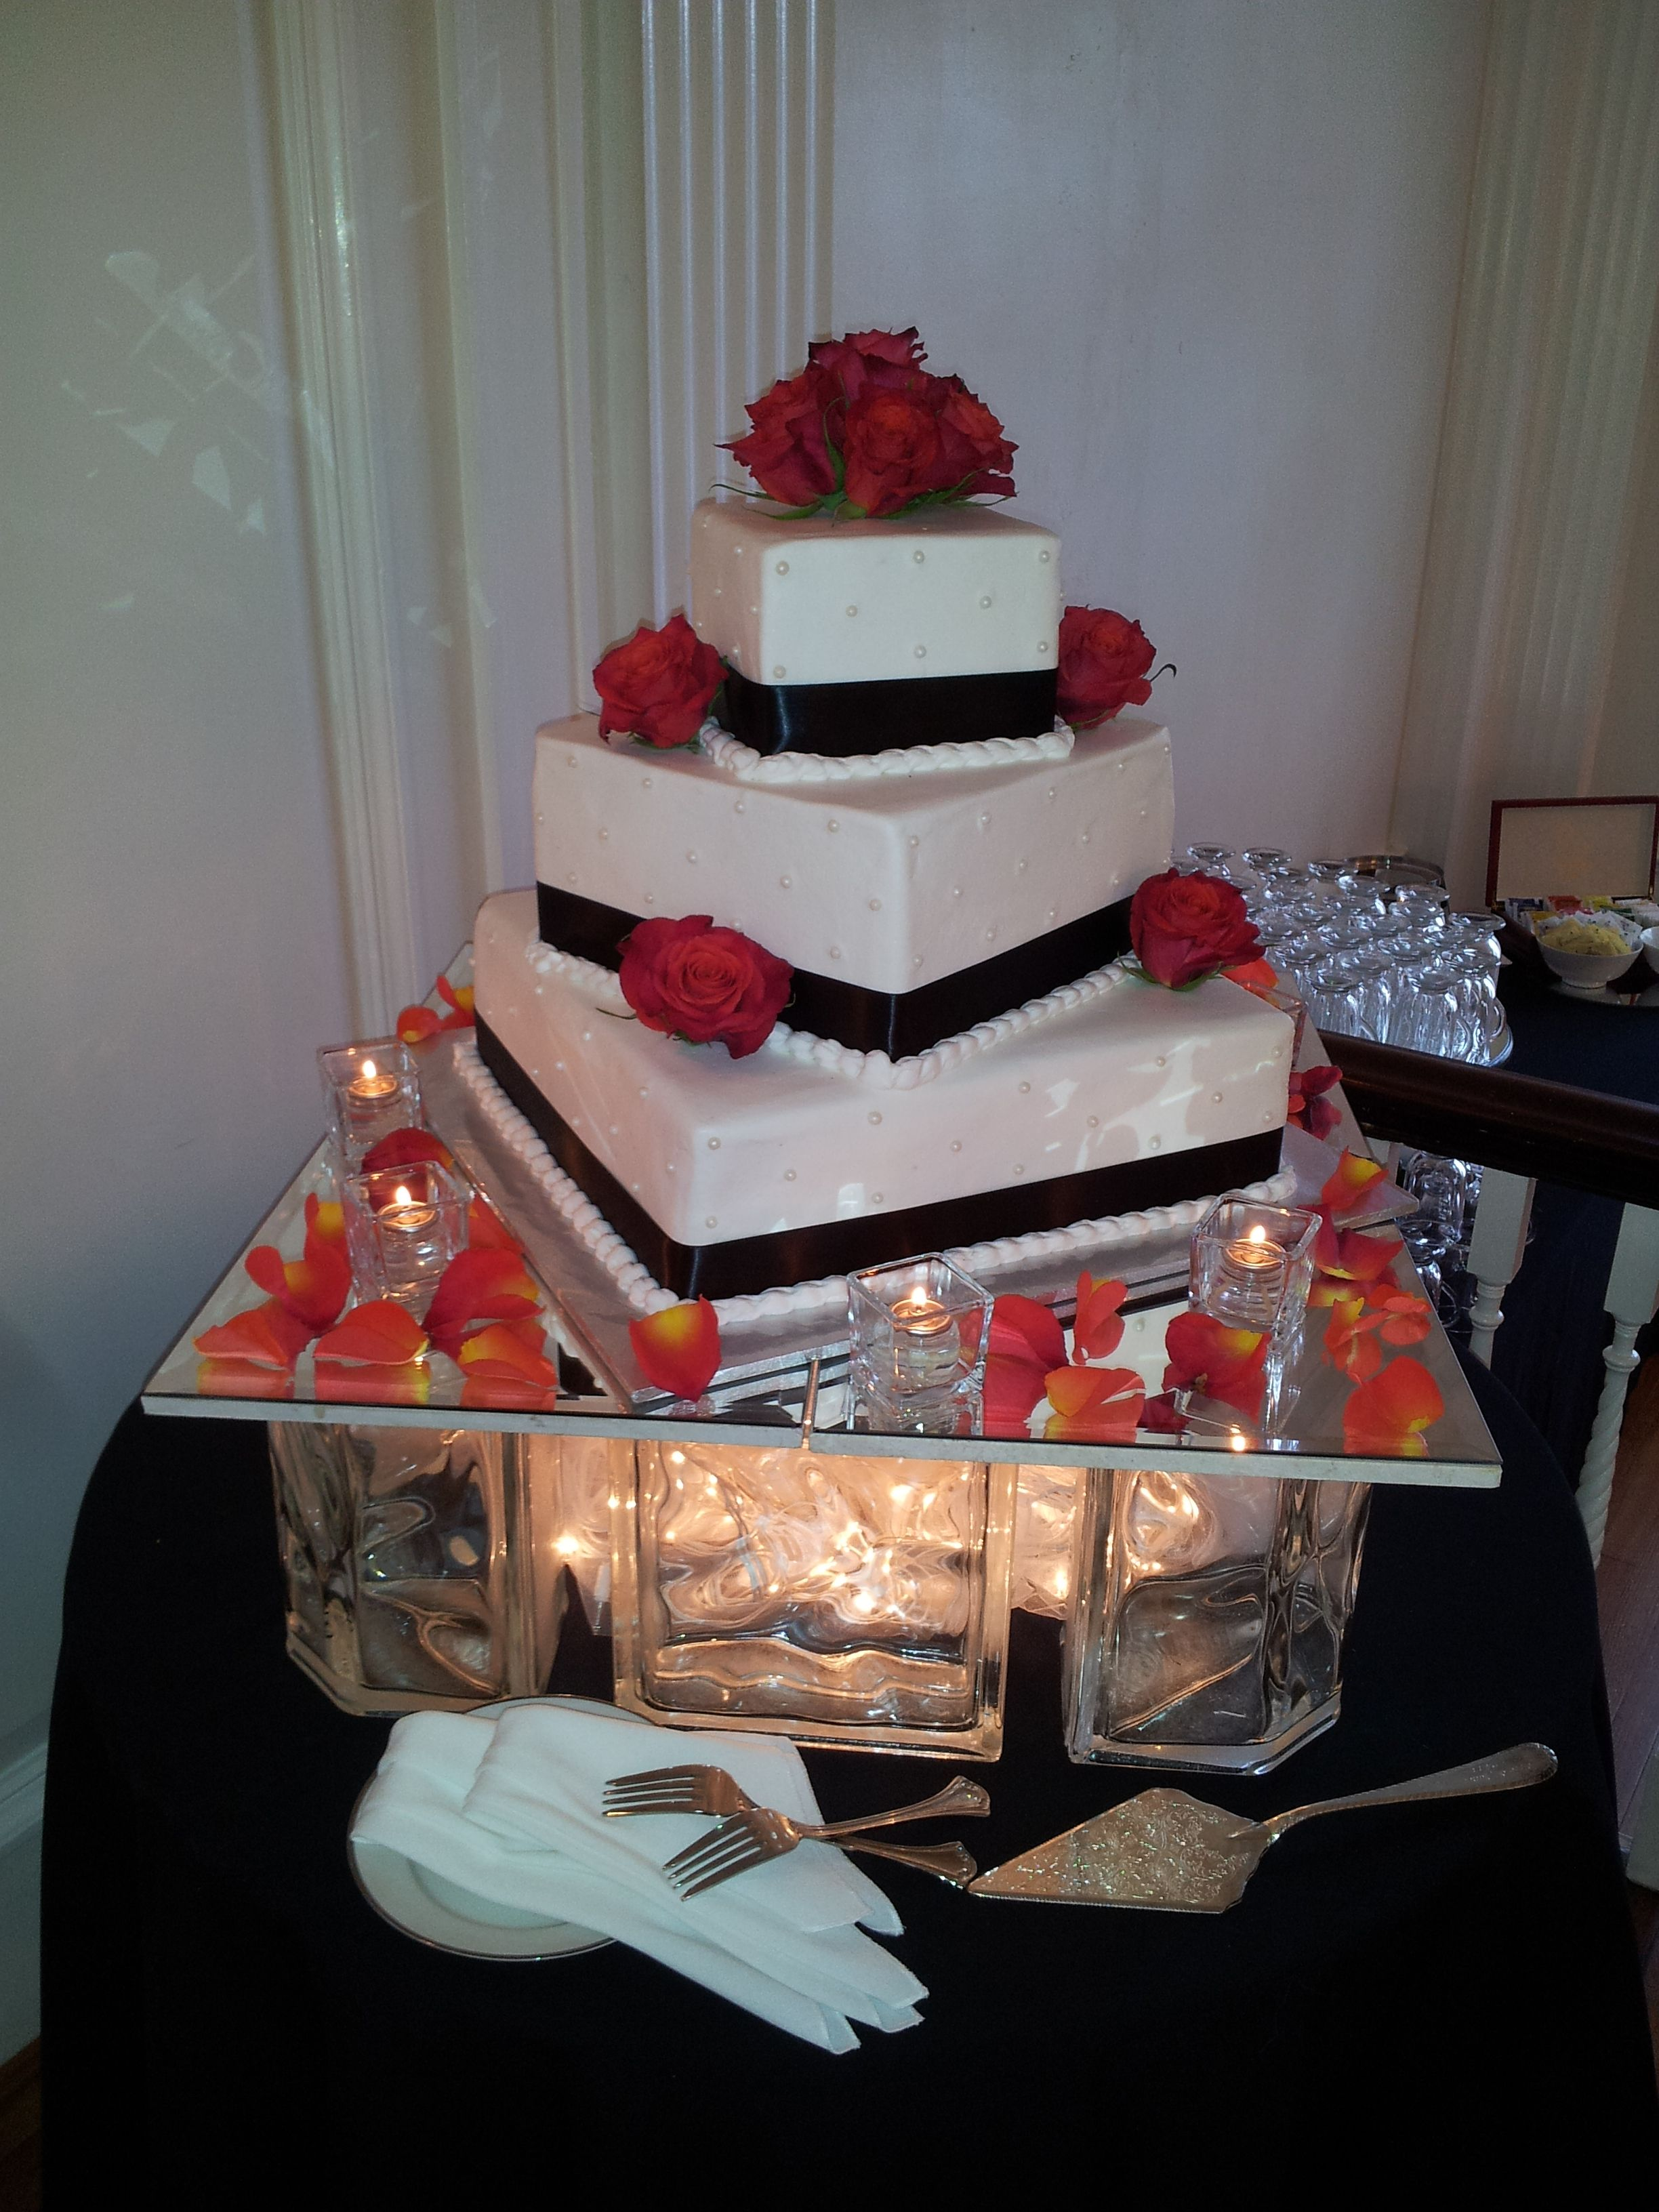 Deco Block Ideas Glass Block Cake Display Wedding Decorating Ideas